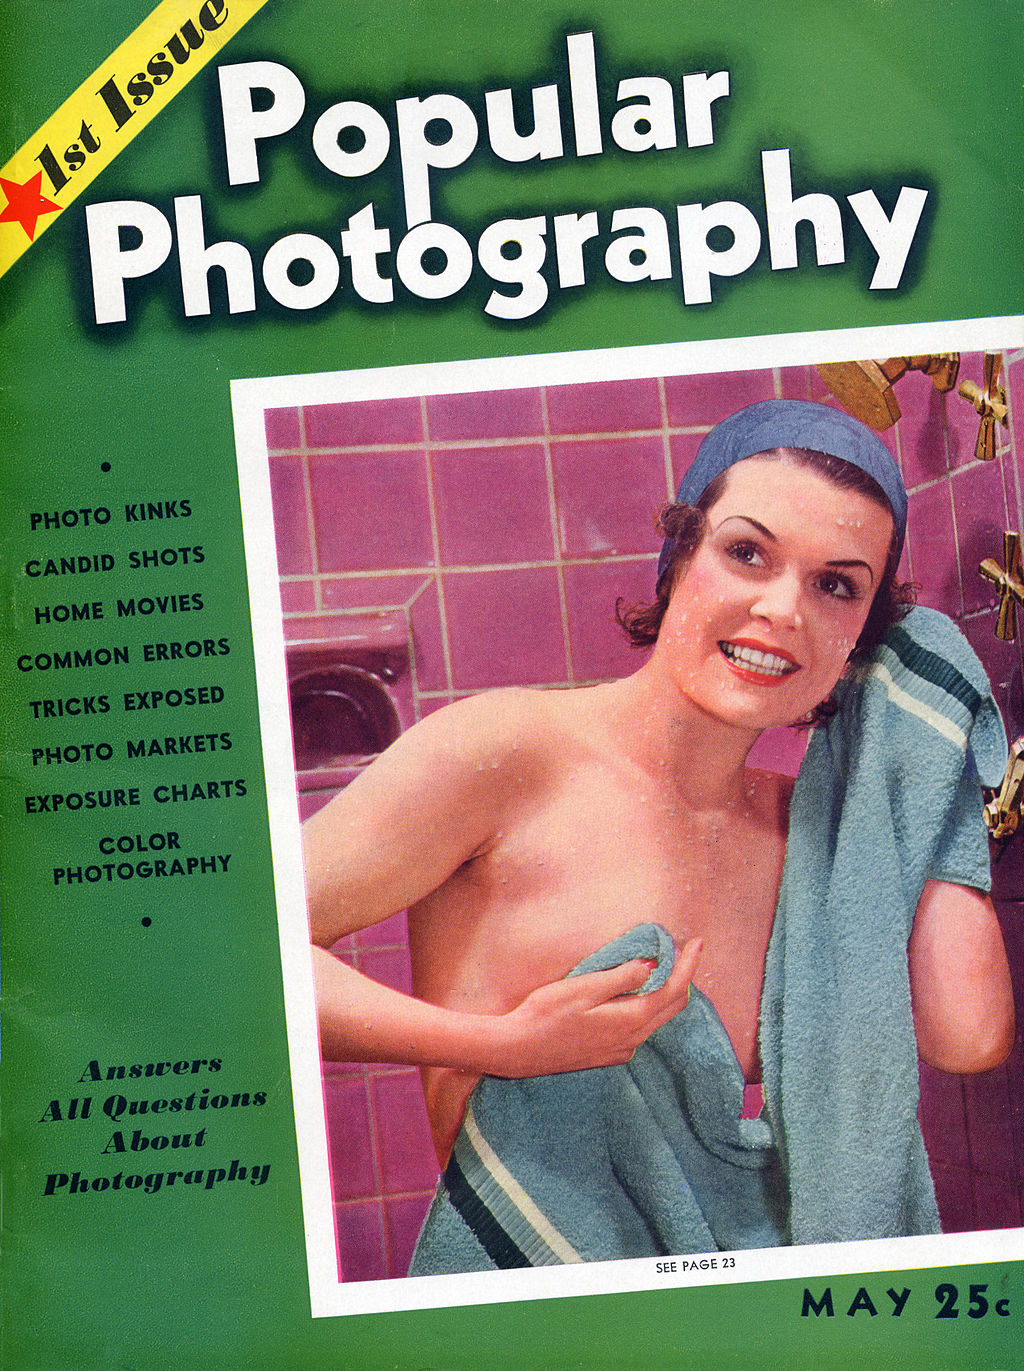 The cover of the very first edition of Popular Photography magazine from 1937